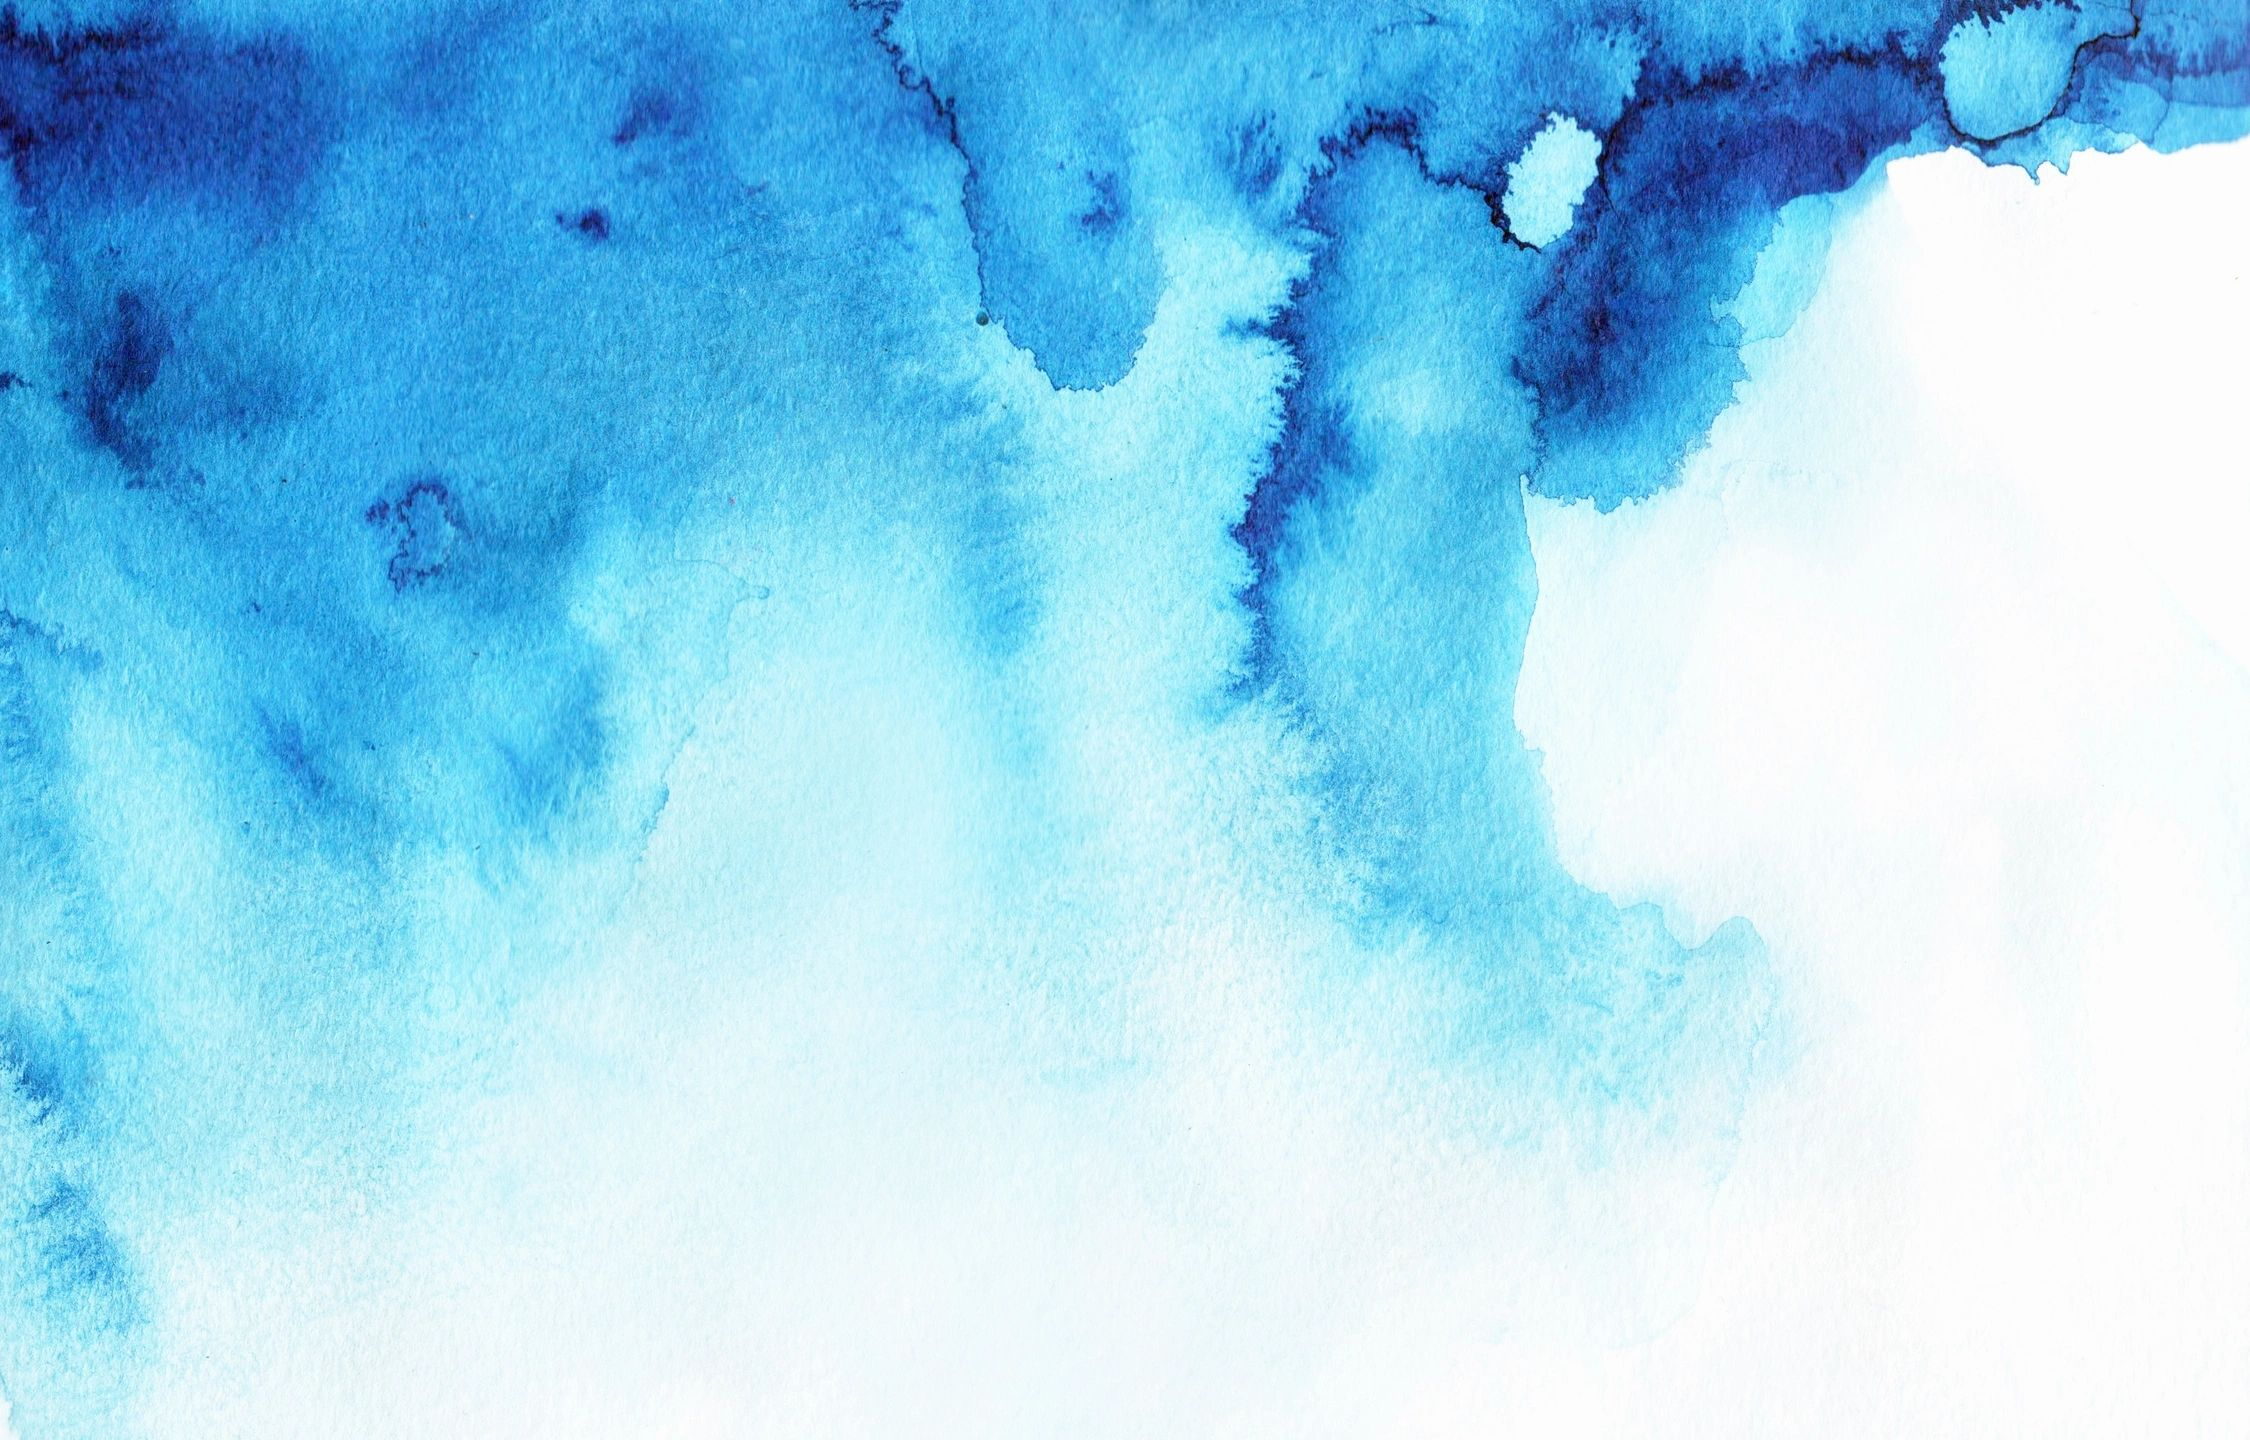 Blue watercolor painted background from the website of Illustrator Priscilla Prentice